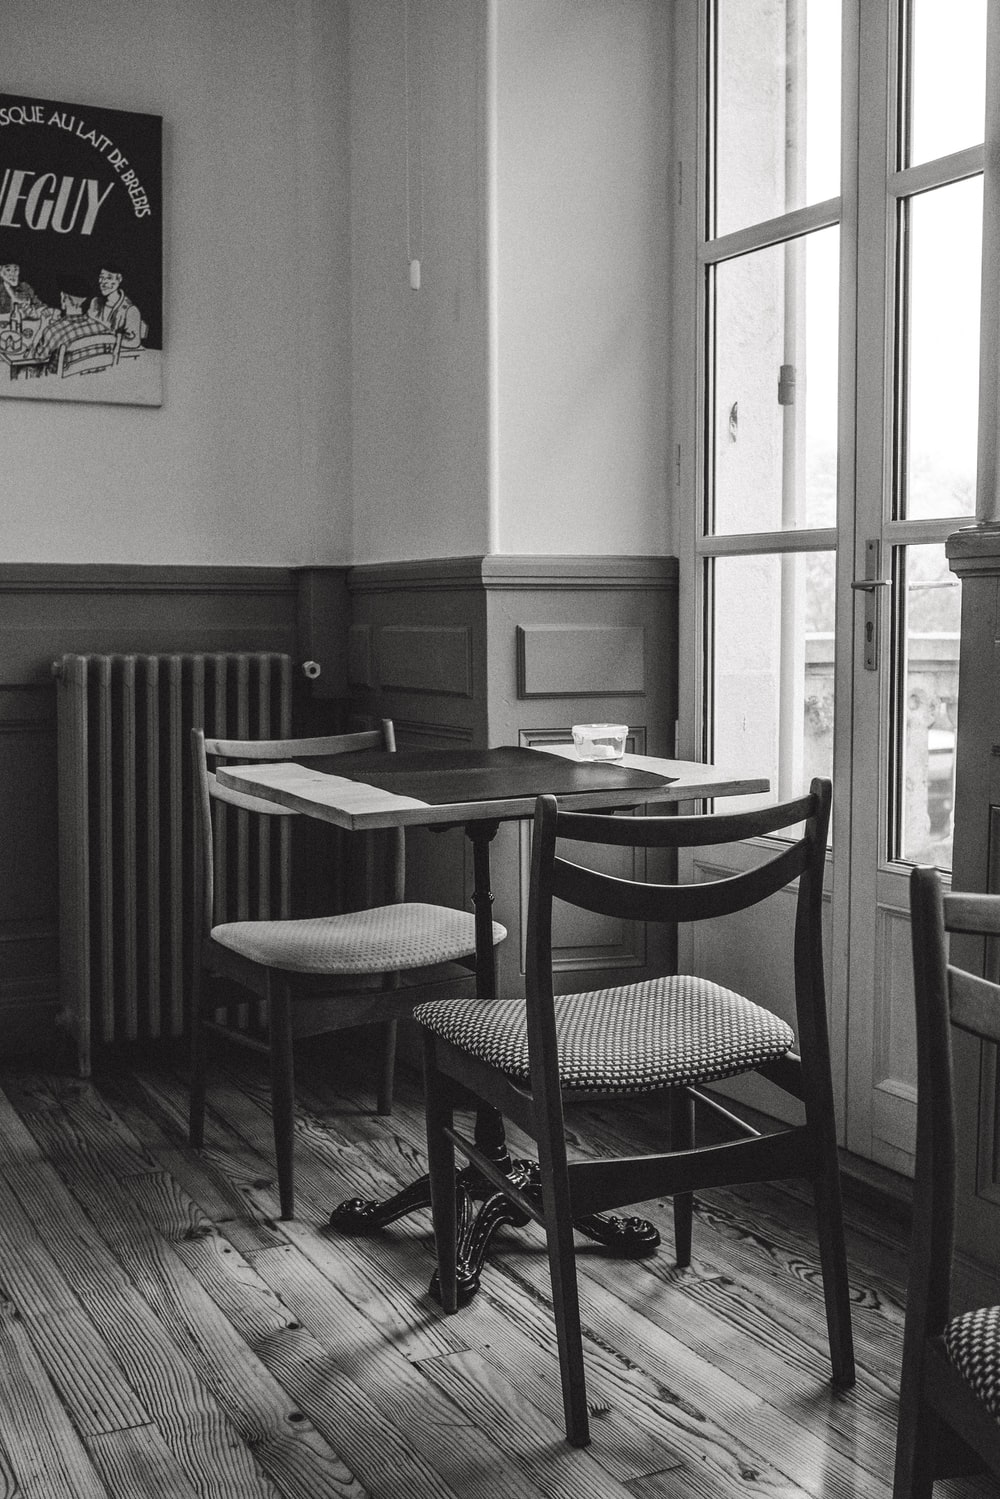 grayscale photo of table and chairs